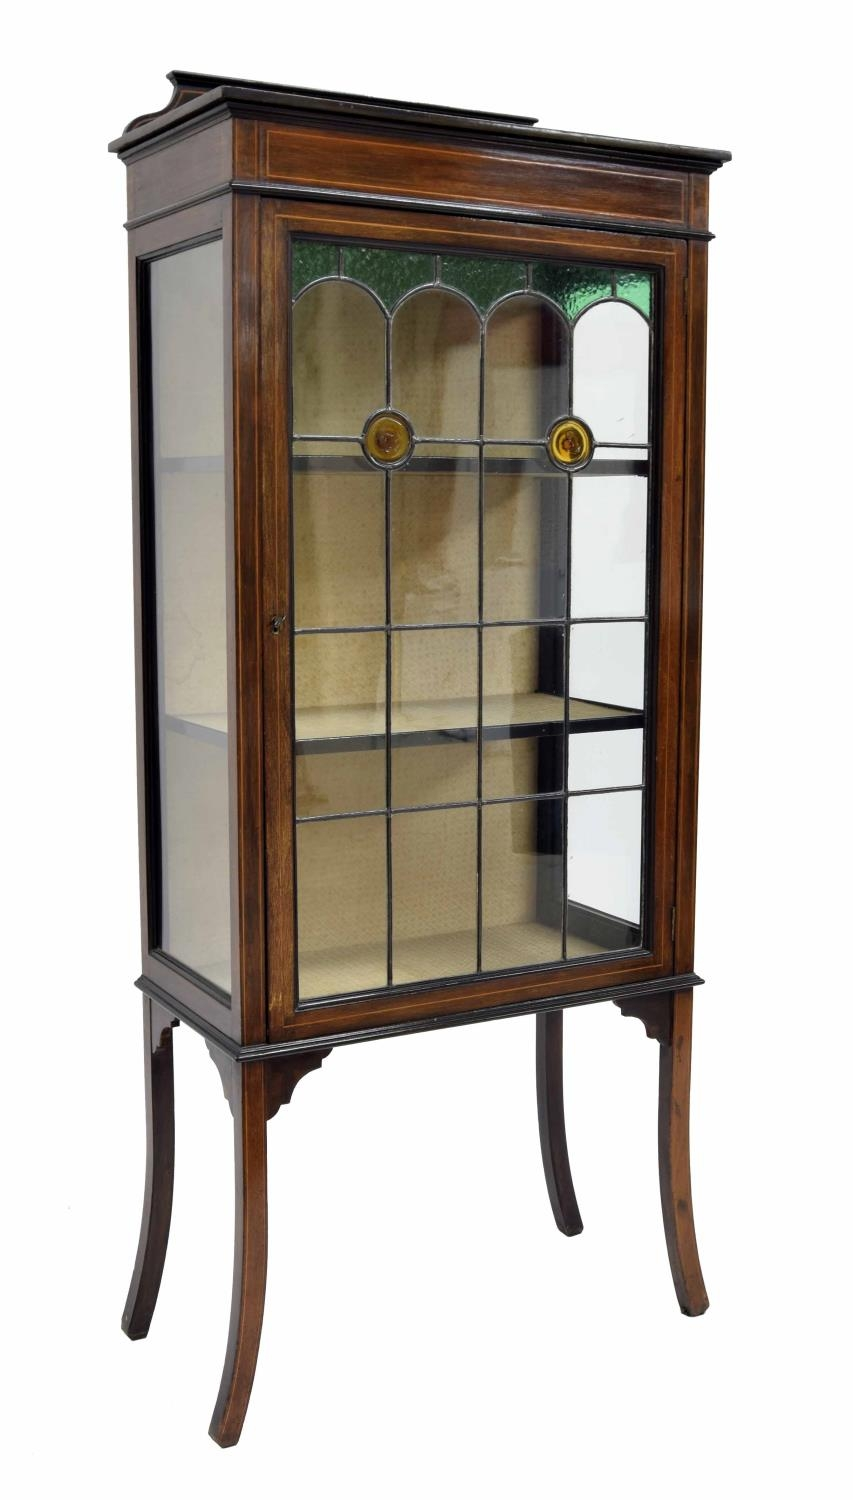 Edwardian mahogany inlaid display cabinet, with a single leaded stained glass door enclosing fixed